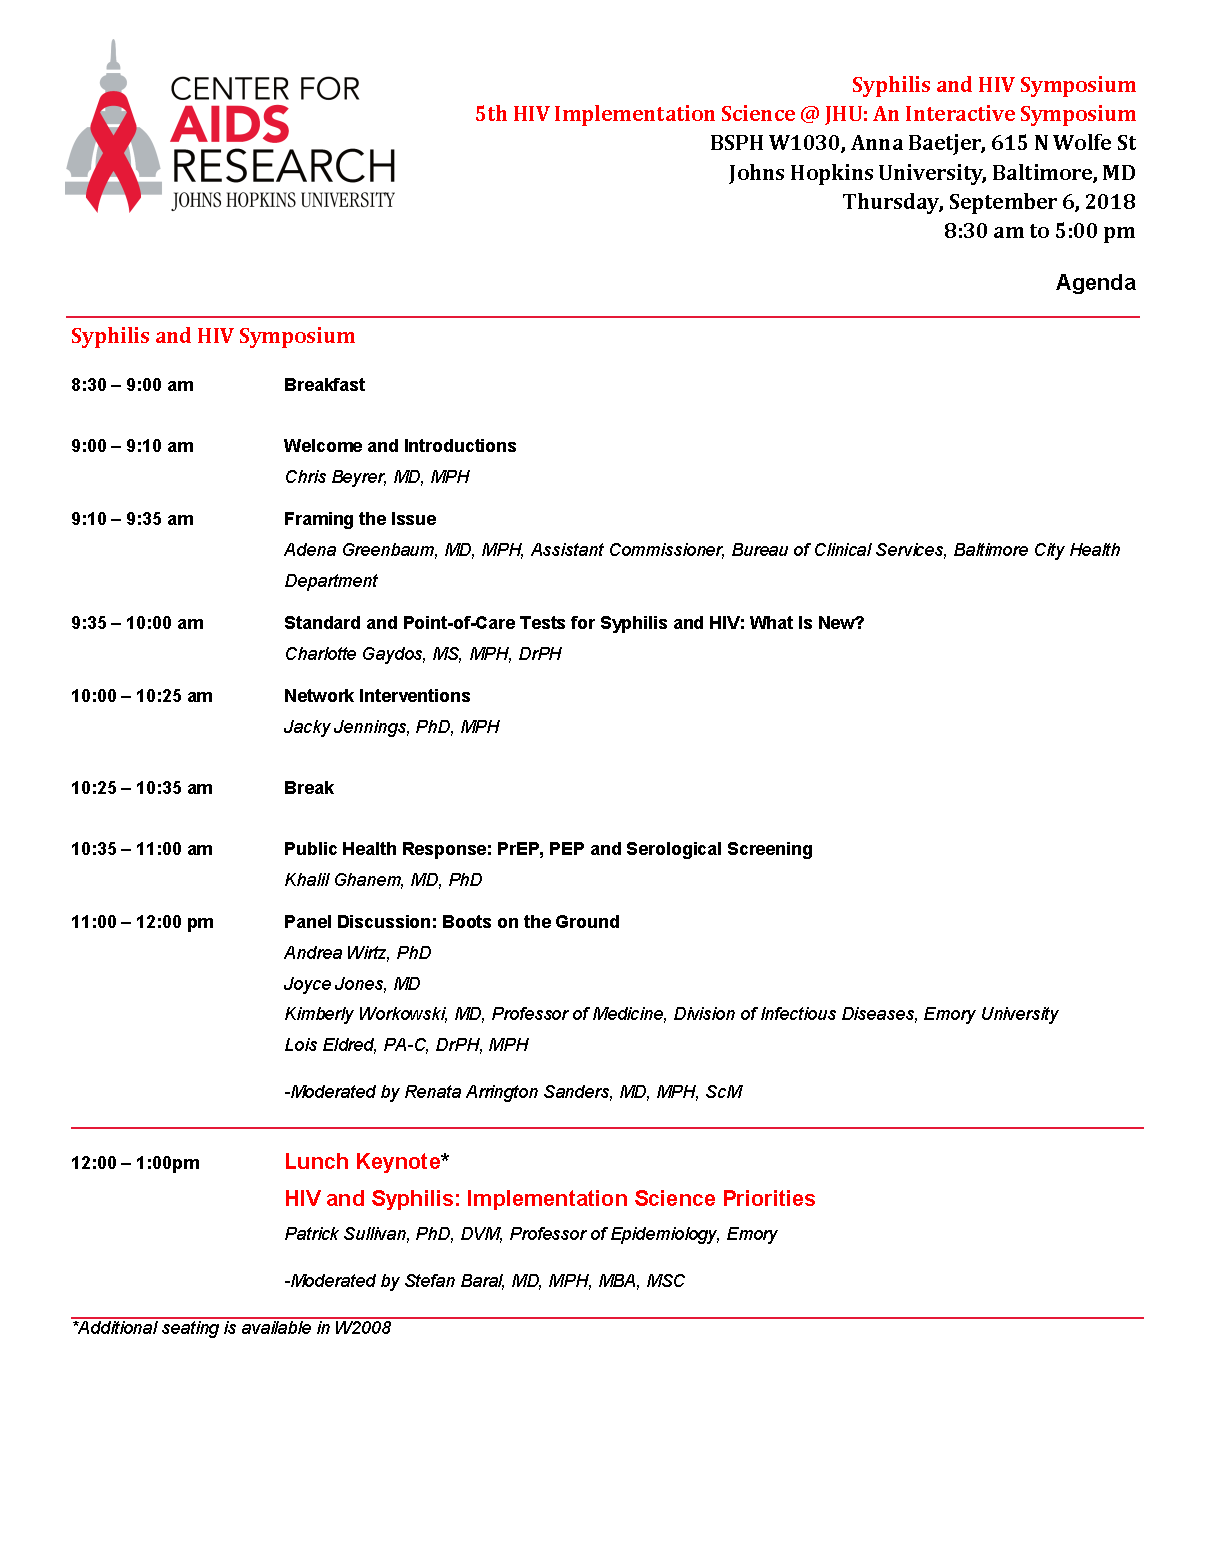 Symposia Agenda September 6-FINAL_Page_1.png